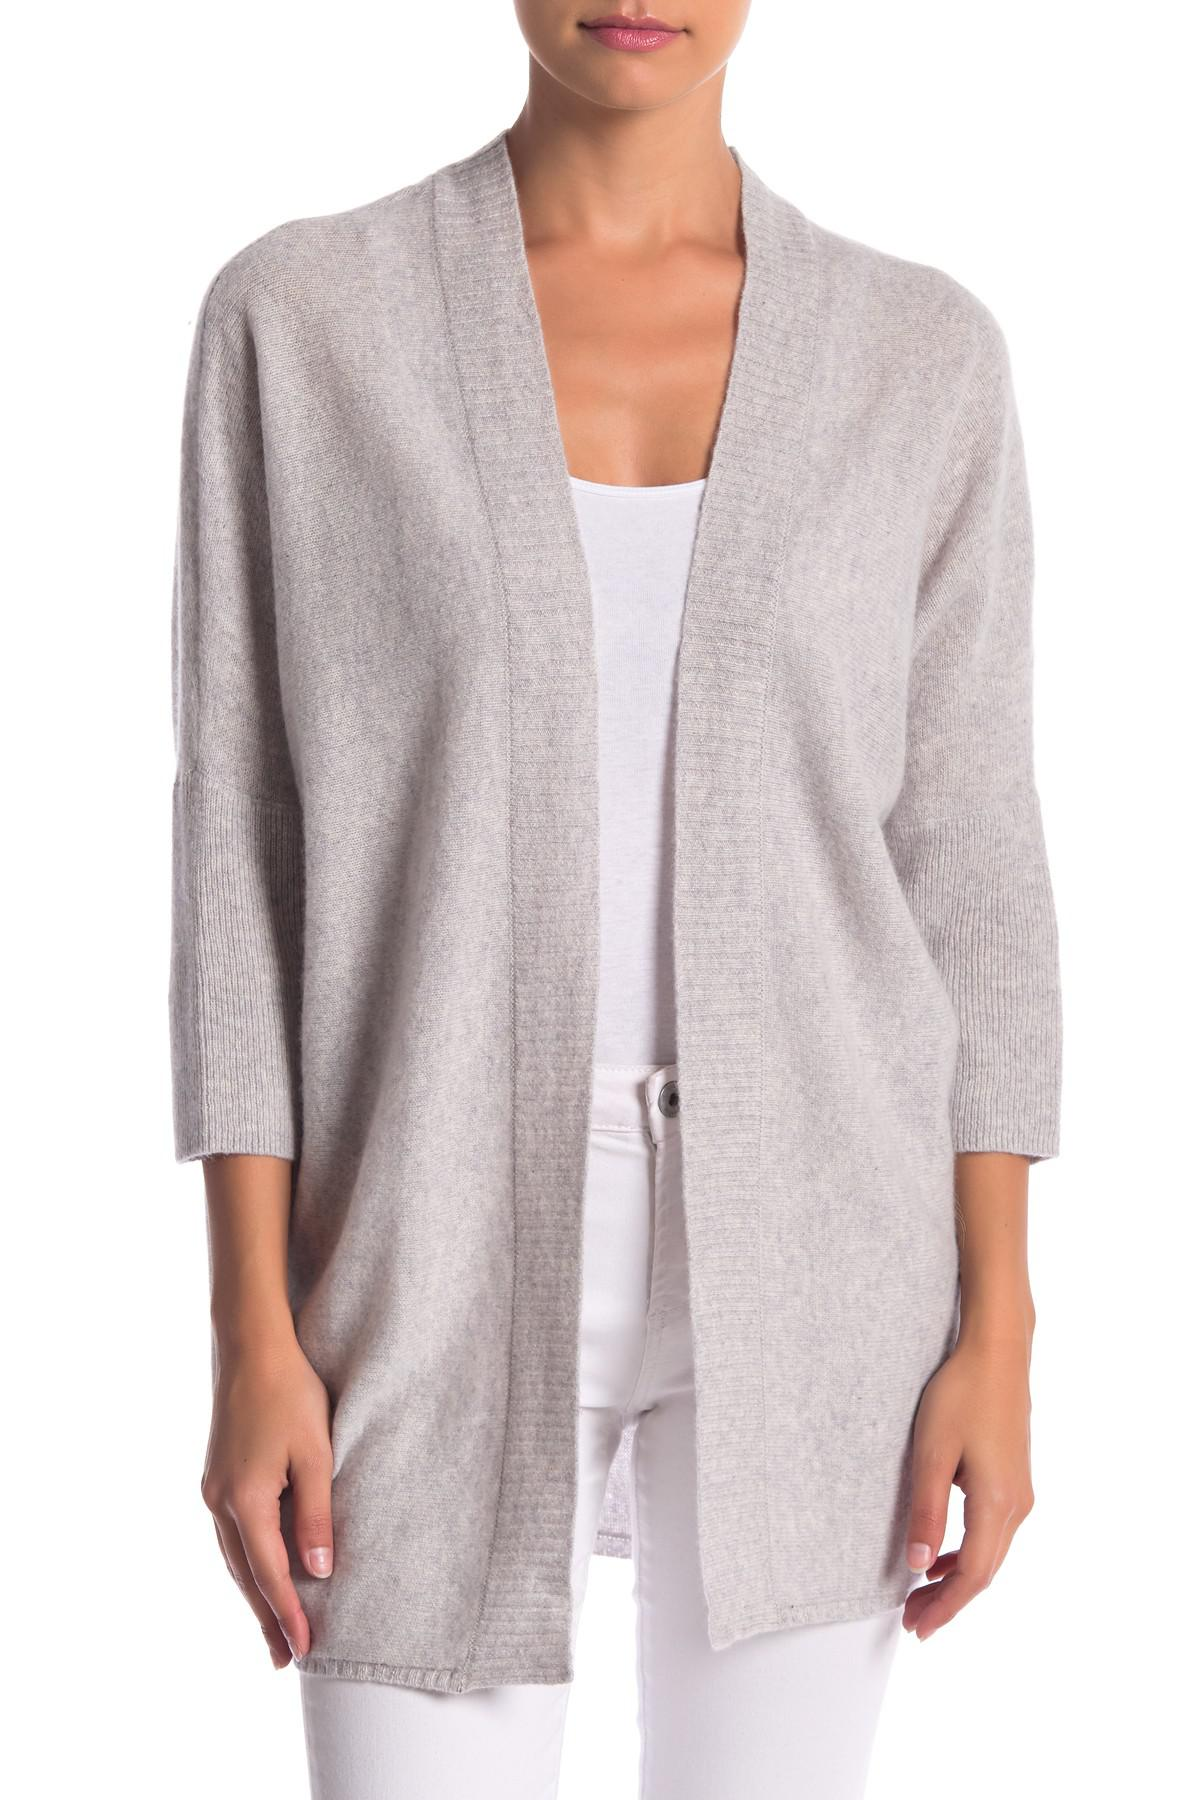 Lyst - Halogen Cashmere Cardigan in Gray afb69e88f